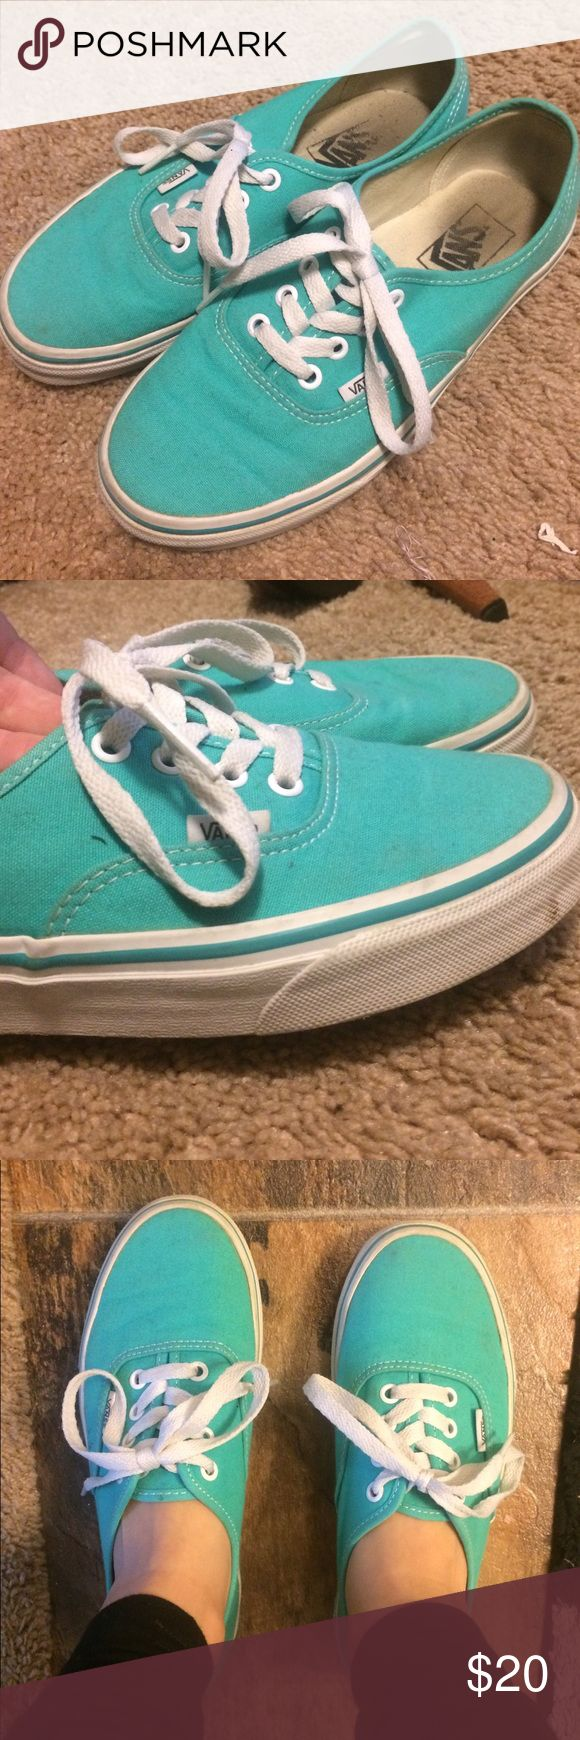 Teal vans Great condition soles are not worn whatsoever. Only wore them no more than 10 times. !!Accepting any offers!! Vans Shoes Sneakers